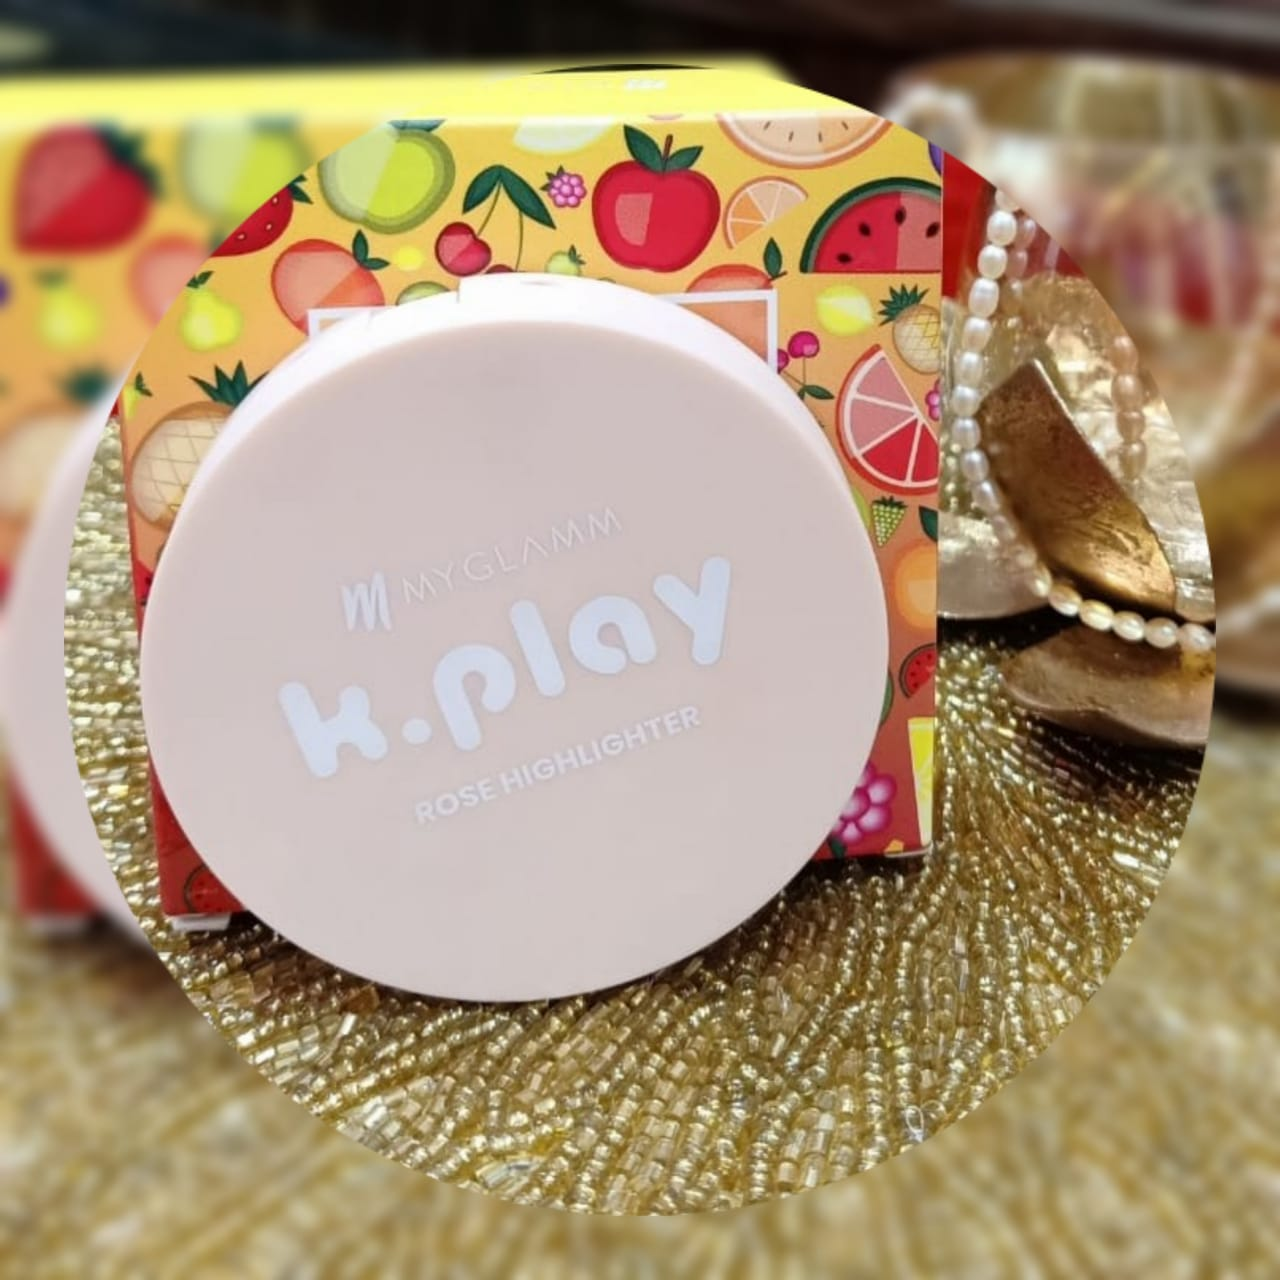 MyGlamm K.PLAY FLAVOURED HIGHLIGHTER – PINK ROSE pic 2-Highlighter with natural glow-By swatisingh